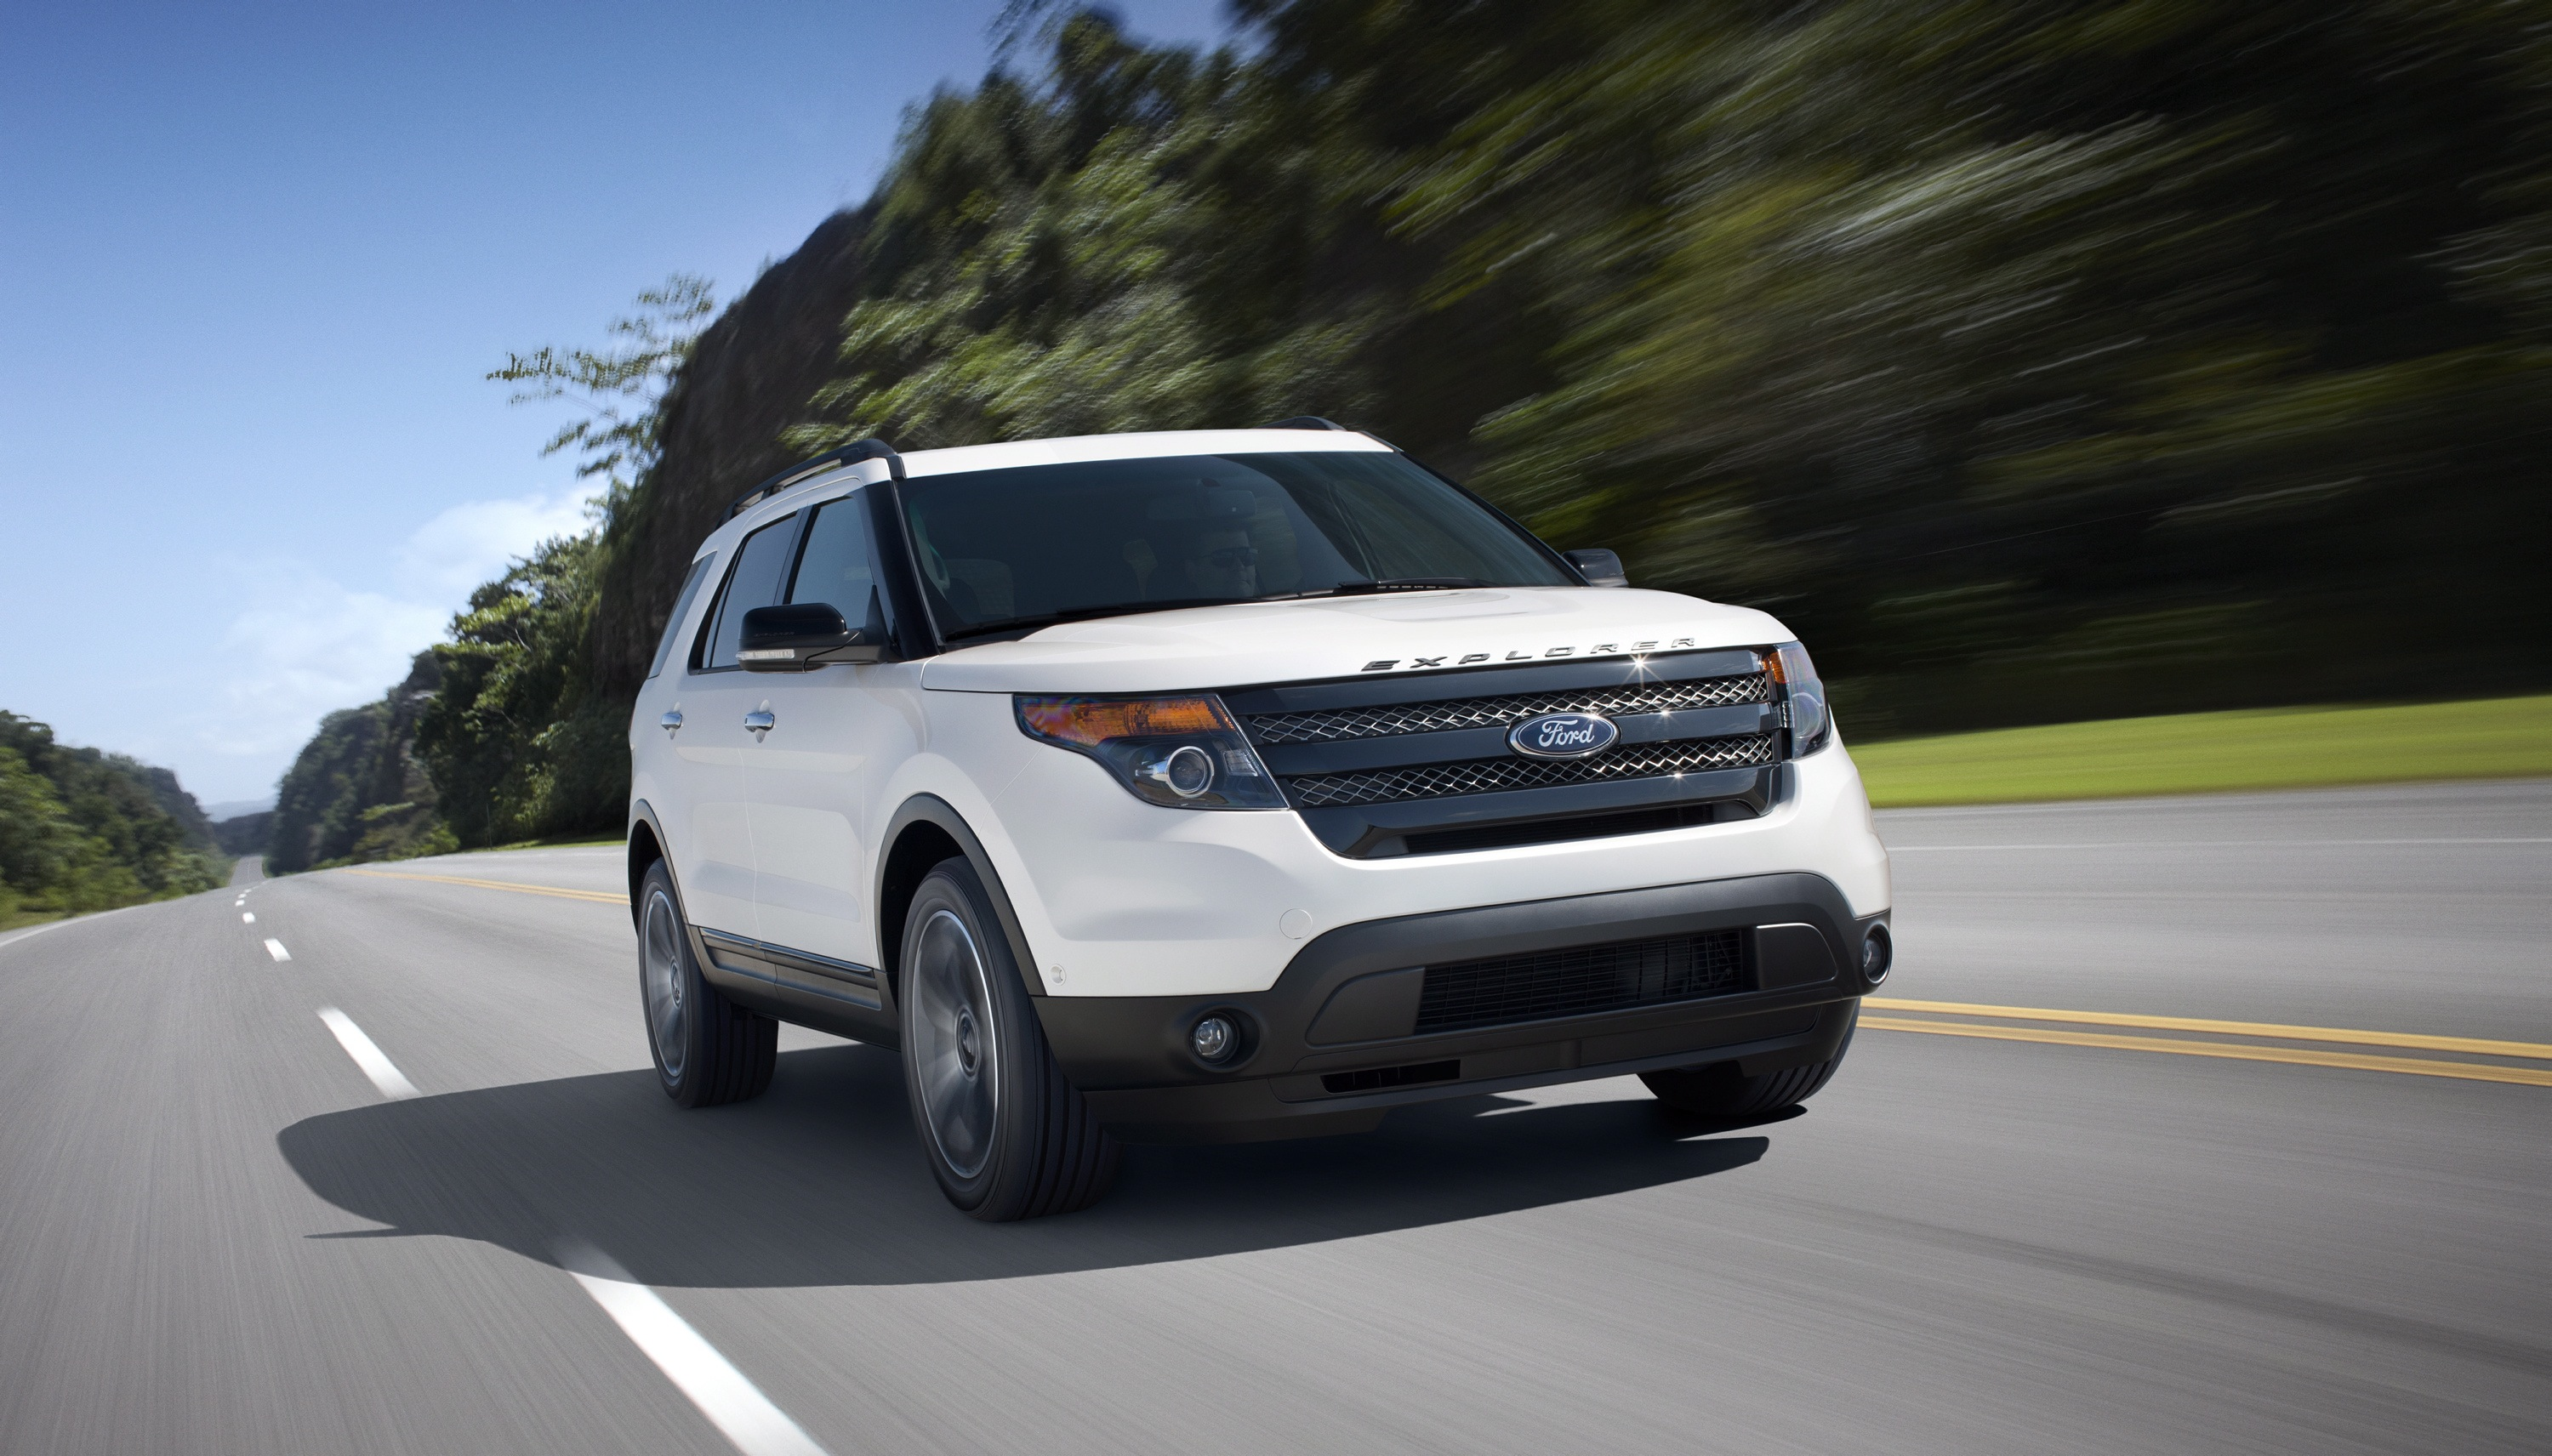 2013 ford explorer sport blends performance and fuel economy. Black Bedroom Furniture Sets. Home Design Ideas